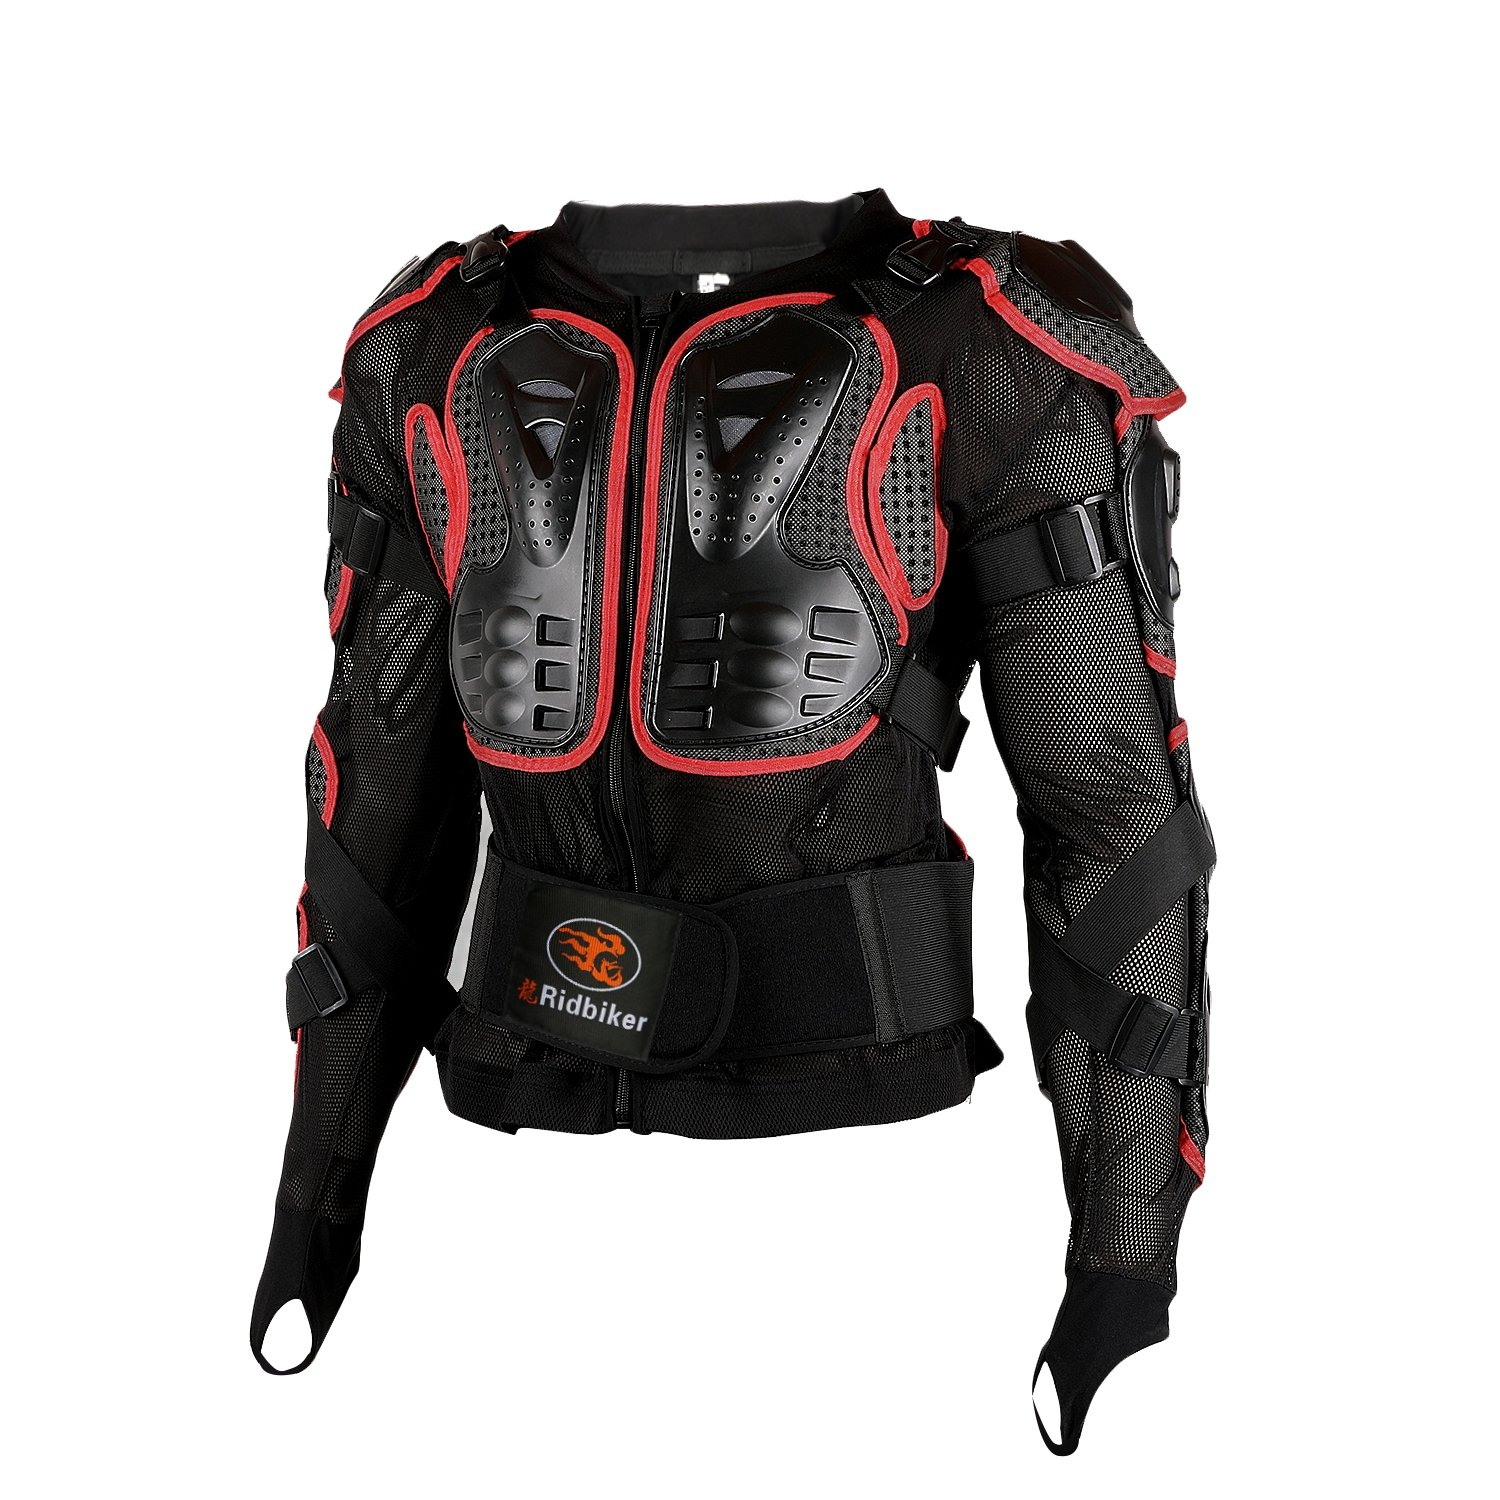 Ridbiker Motorcycle Full Body Armor Protector Removable Racing Jacket Motocross Spine Chest Motocross Protective Shirt, L, Red Ridbiker-14